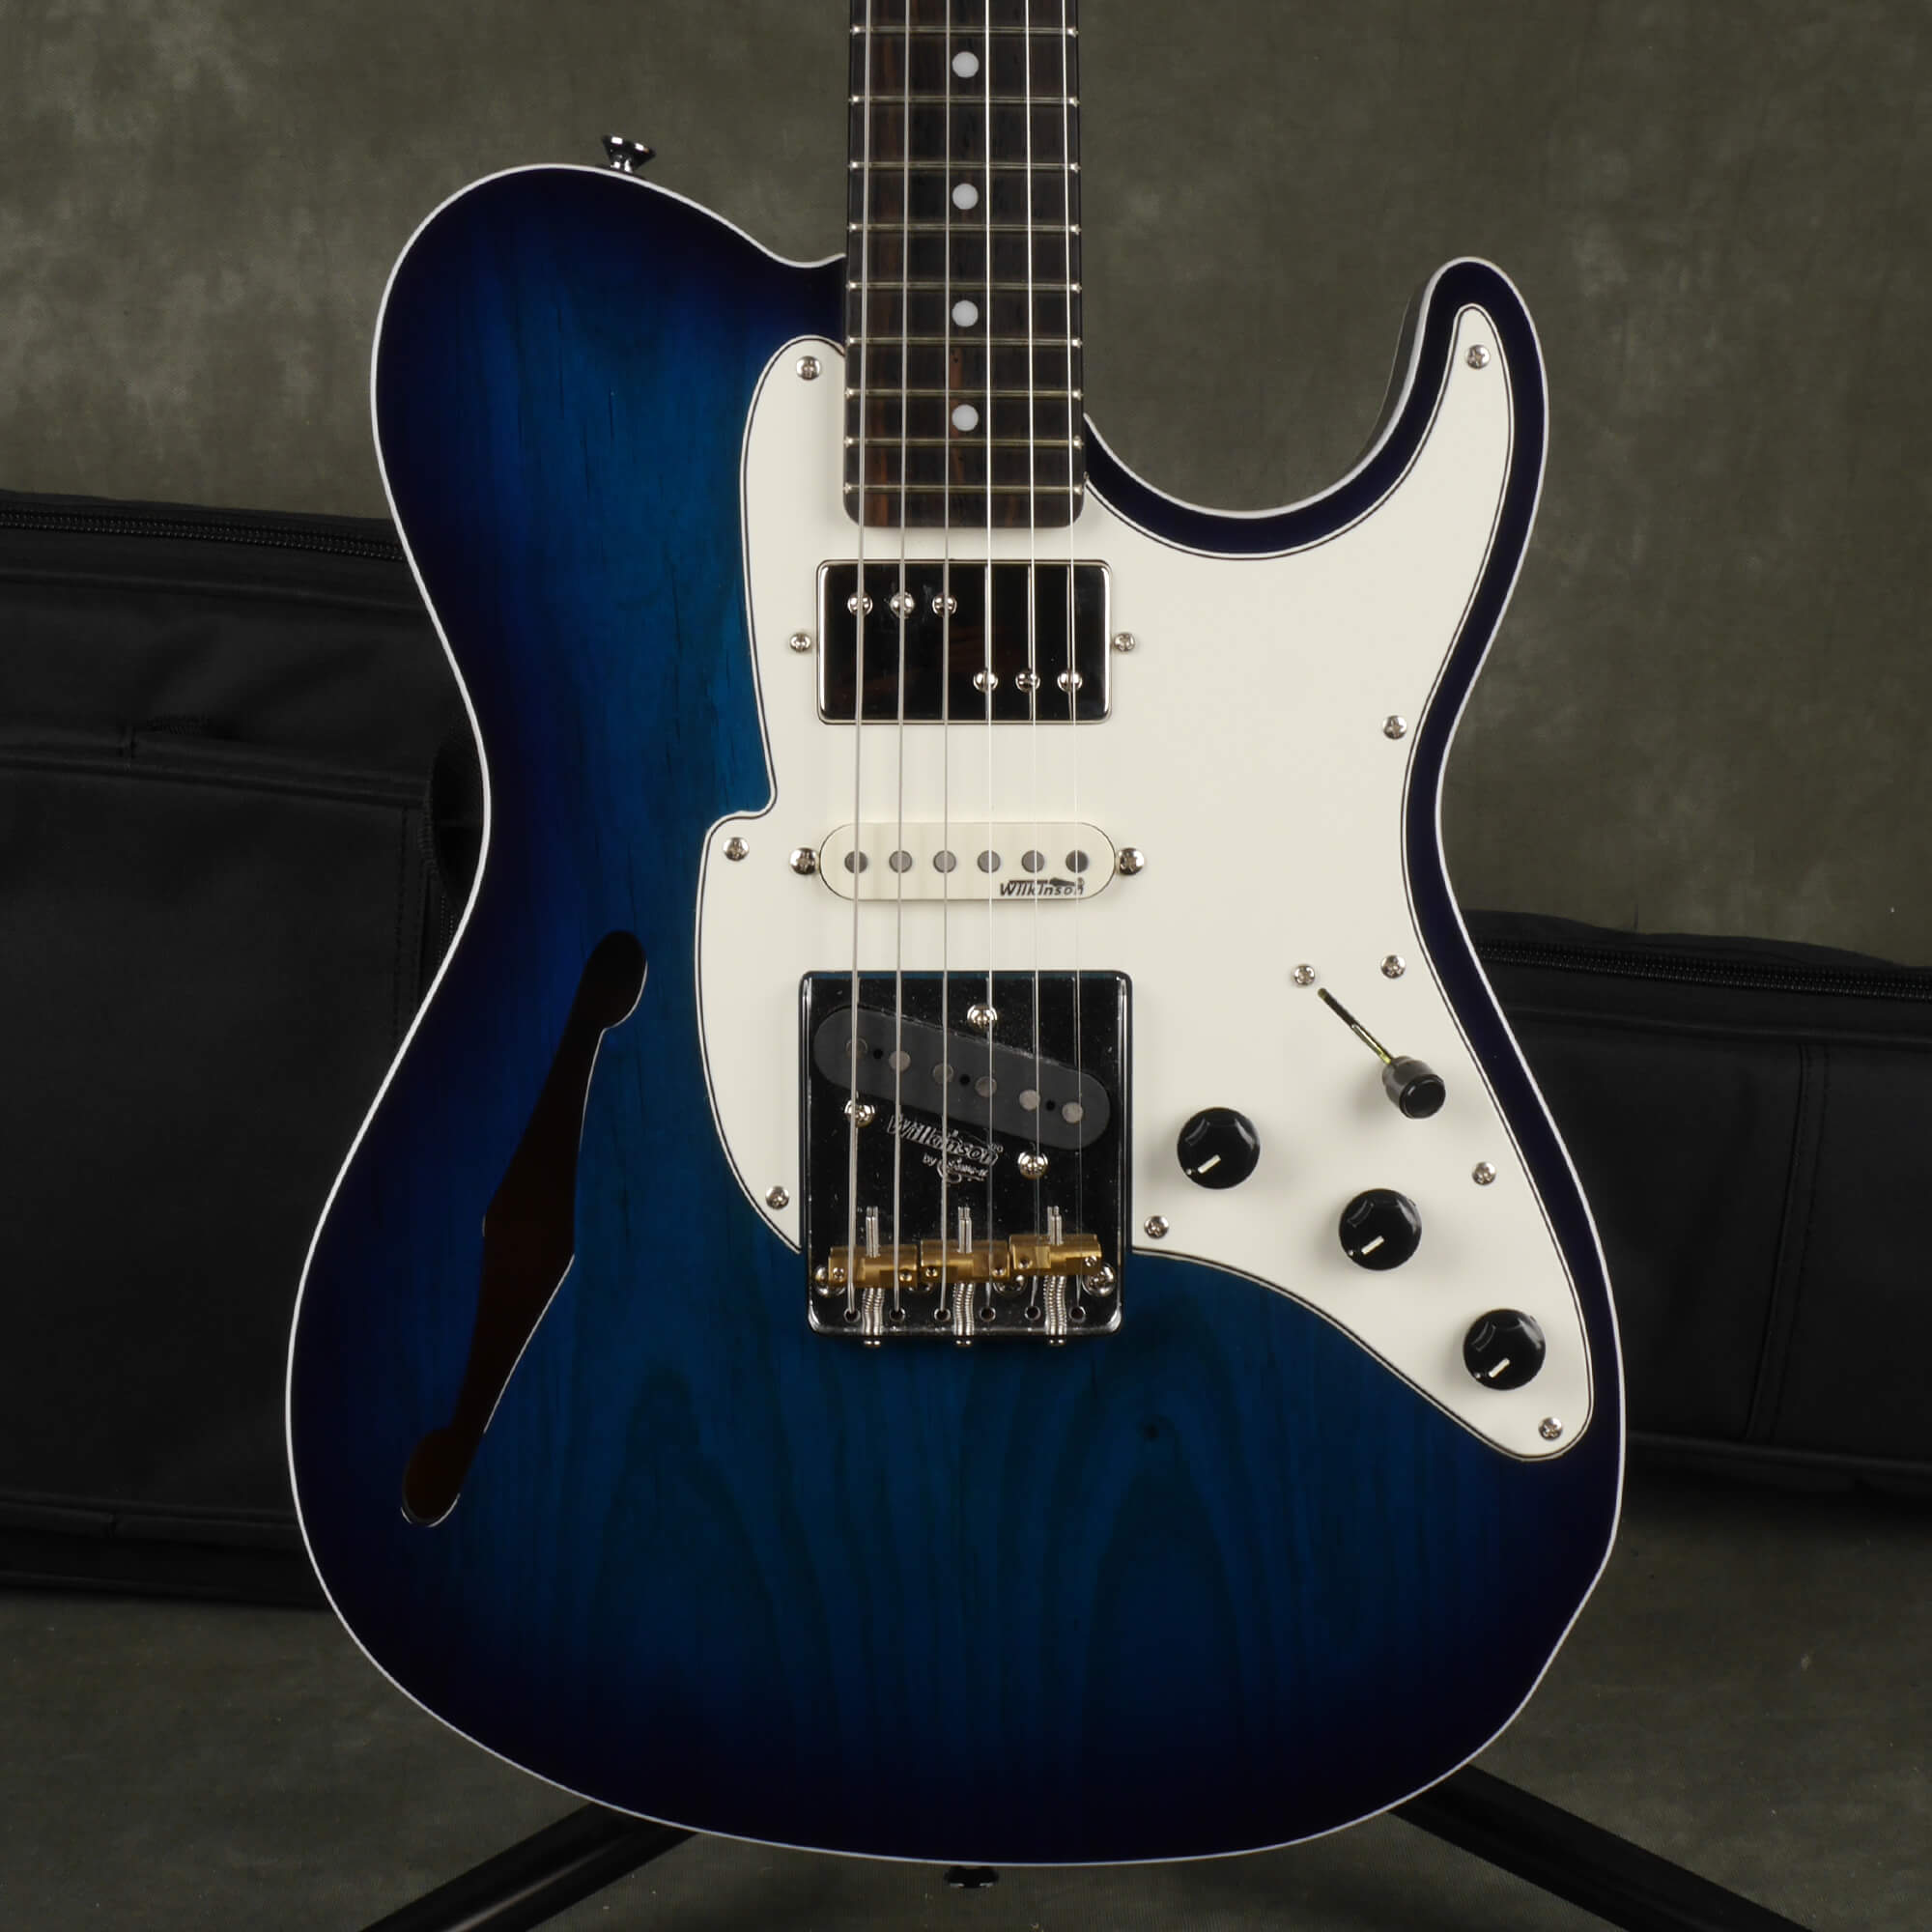 Fret-King Country Squire Semitone Special - Blue Burst w/Gig Bag - 2nd Hand